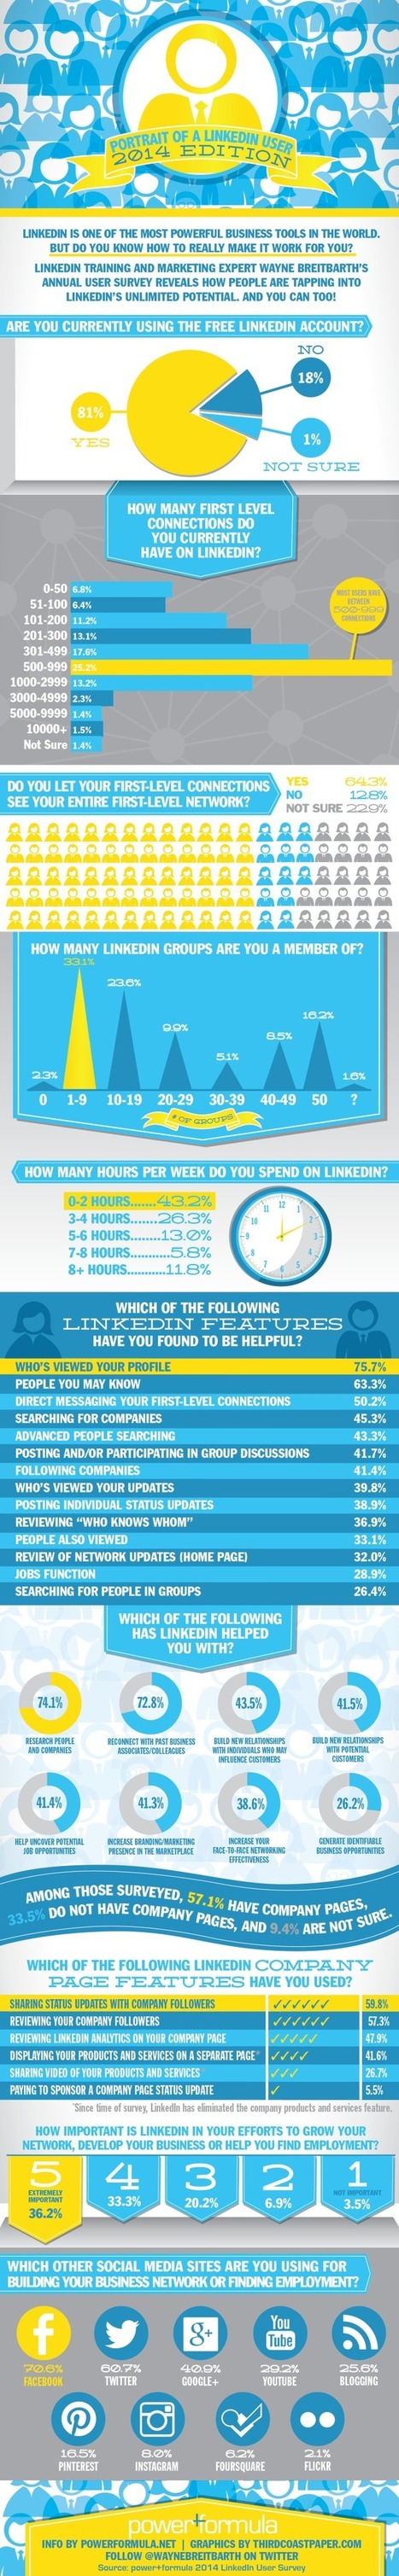 How Does the Average Person Use LinkedIn in 2014? [INFOGRAPHIC] | Työnhaku - rekrytointi - some | Scoop.it